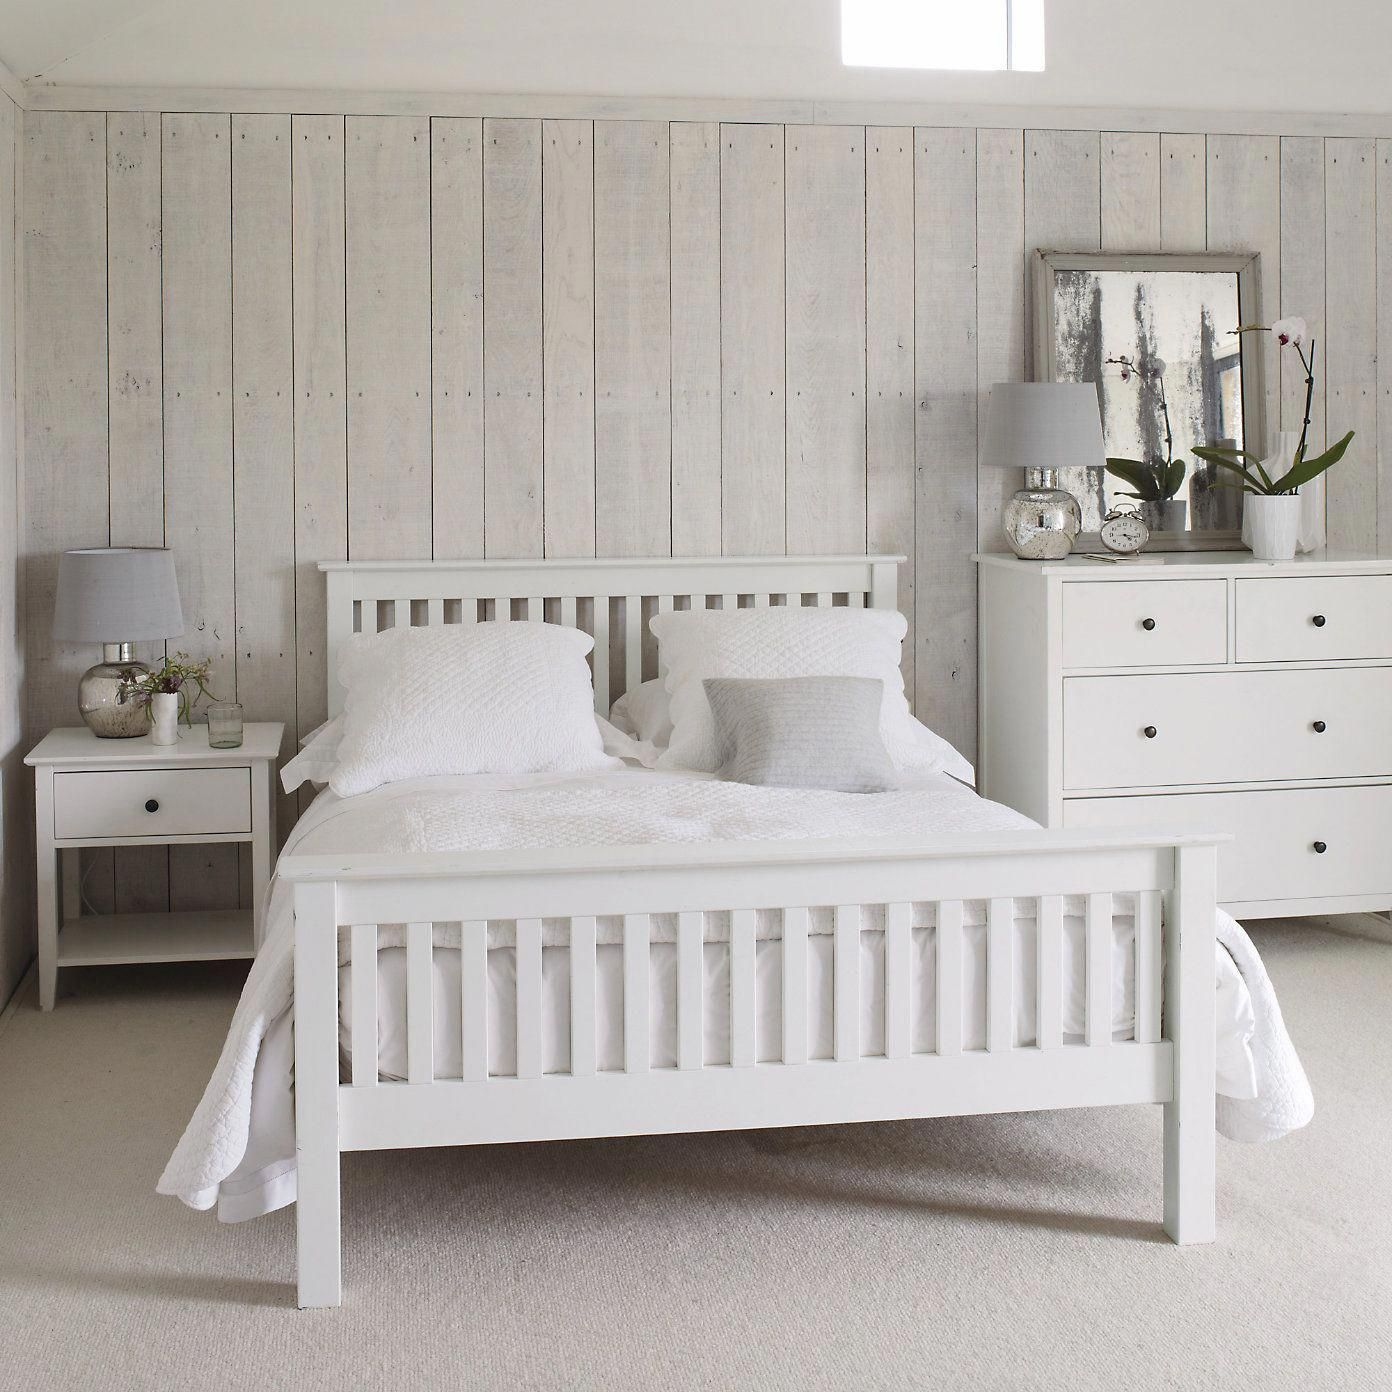 Wooden Bed With A Space Saving Wheel Out Truckle Bedroomsets